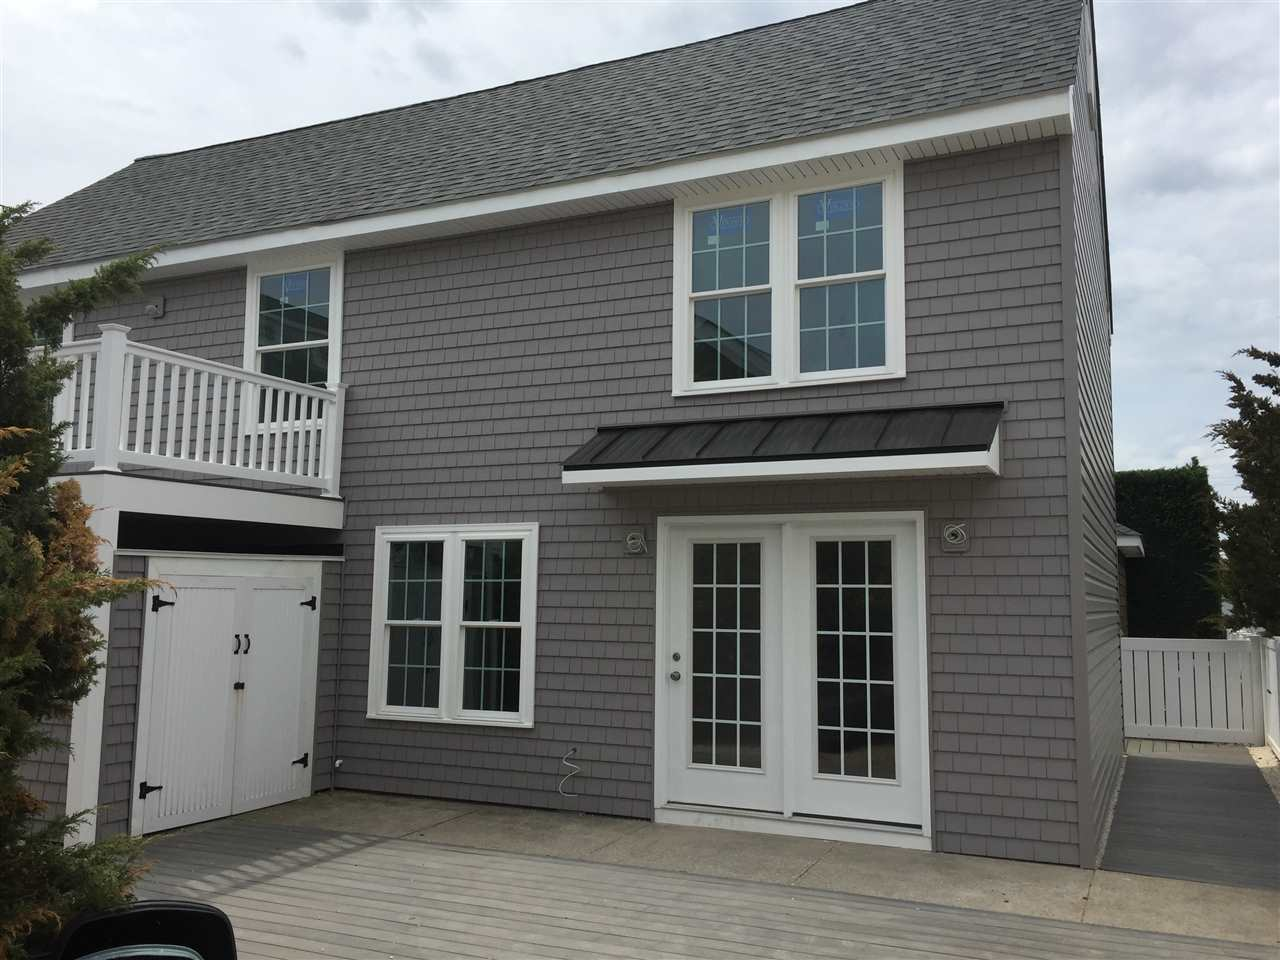 153 83rd, Stone Harbor, NJ 08247